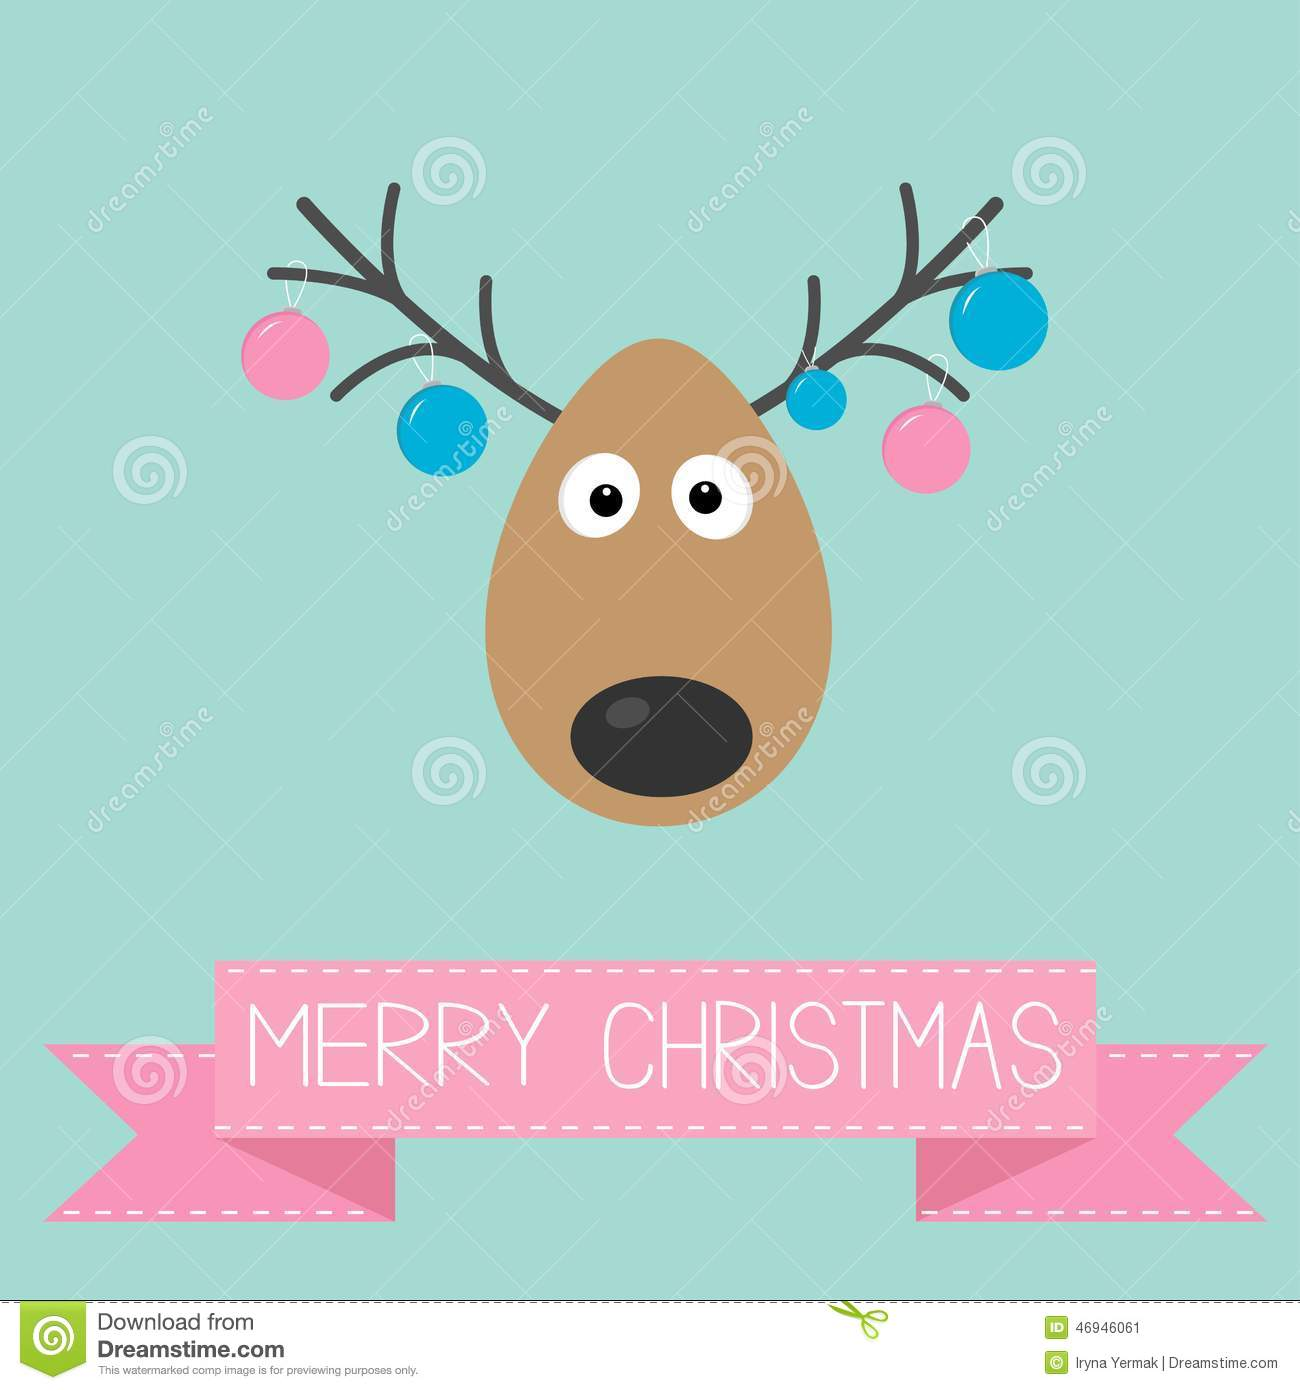 Cute Cartoon Deer With Hanging Christmas Ball Toys On Horns Merry